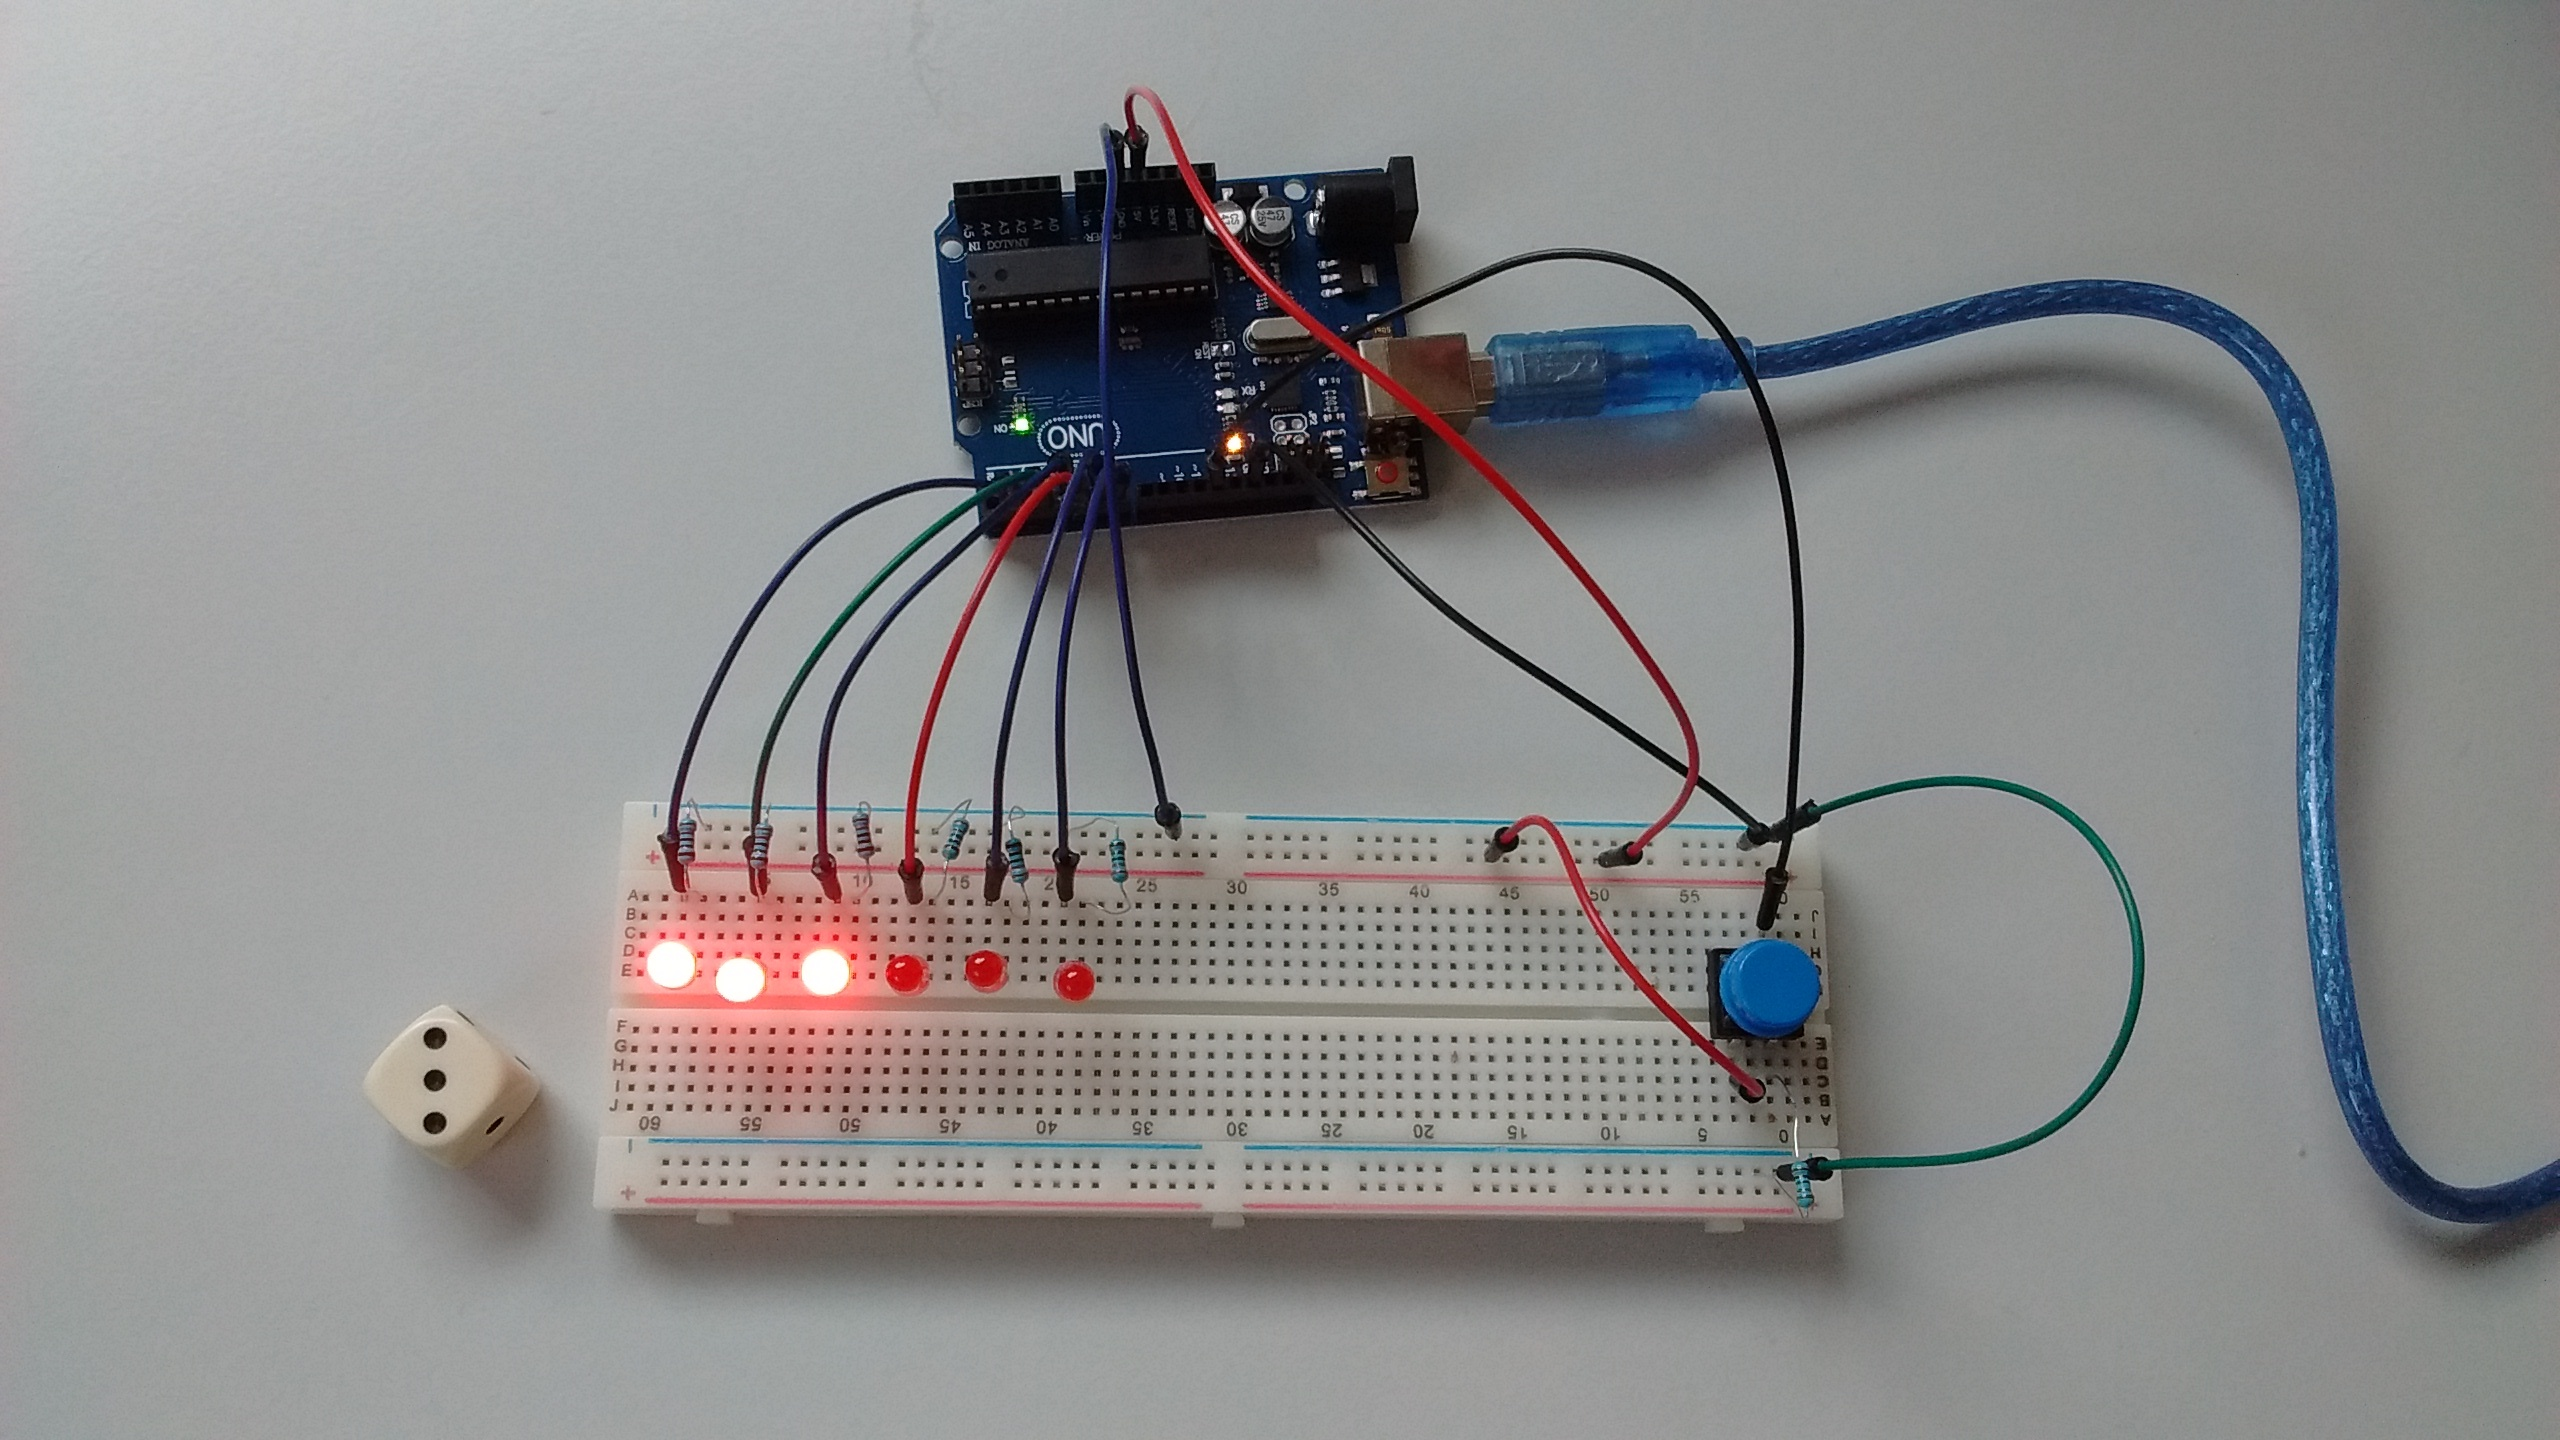 Led Dice Electronically Designed Game Circuit By Lm555 Ilomsij9vgpzatpwiiv5